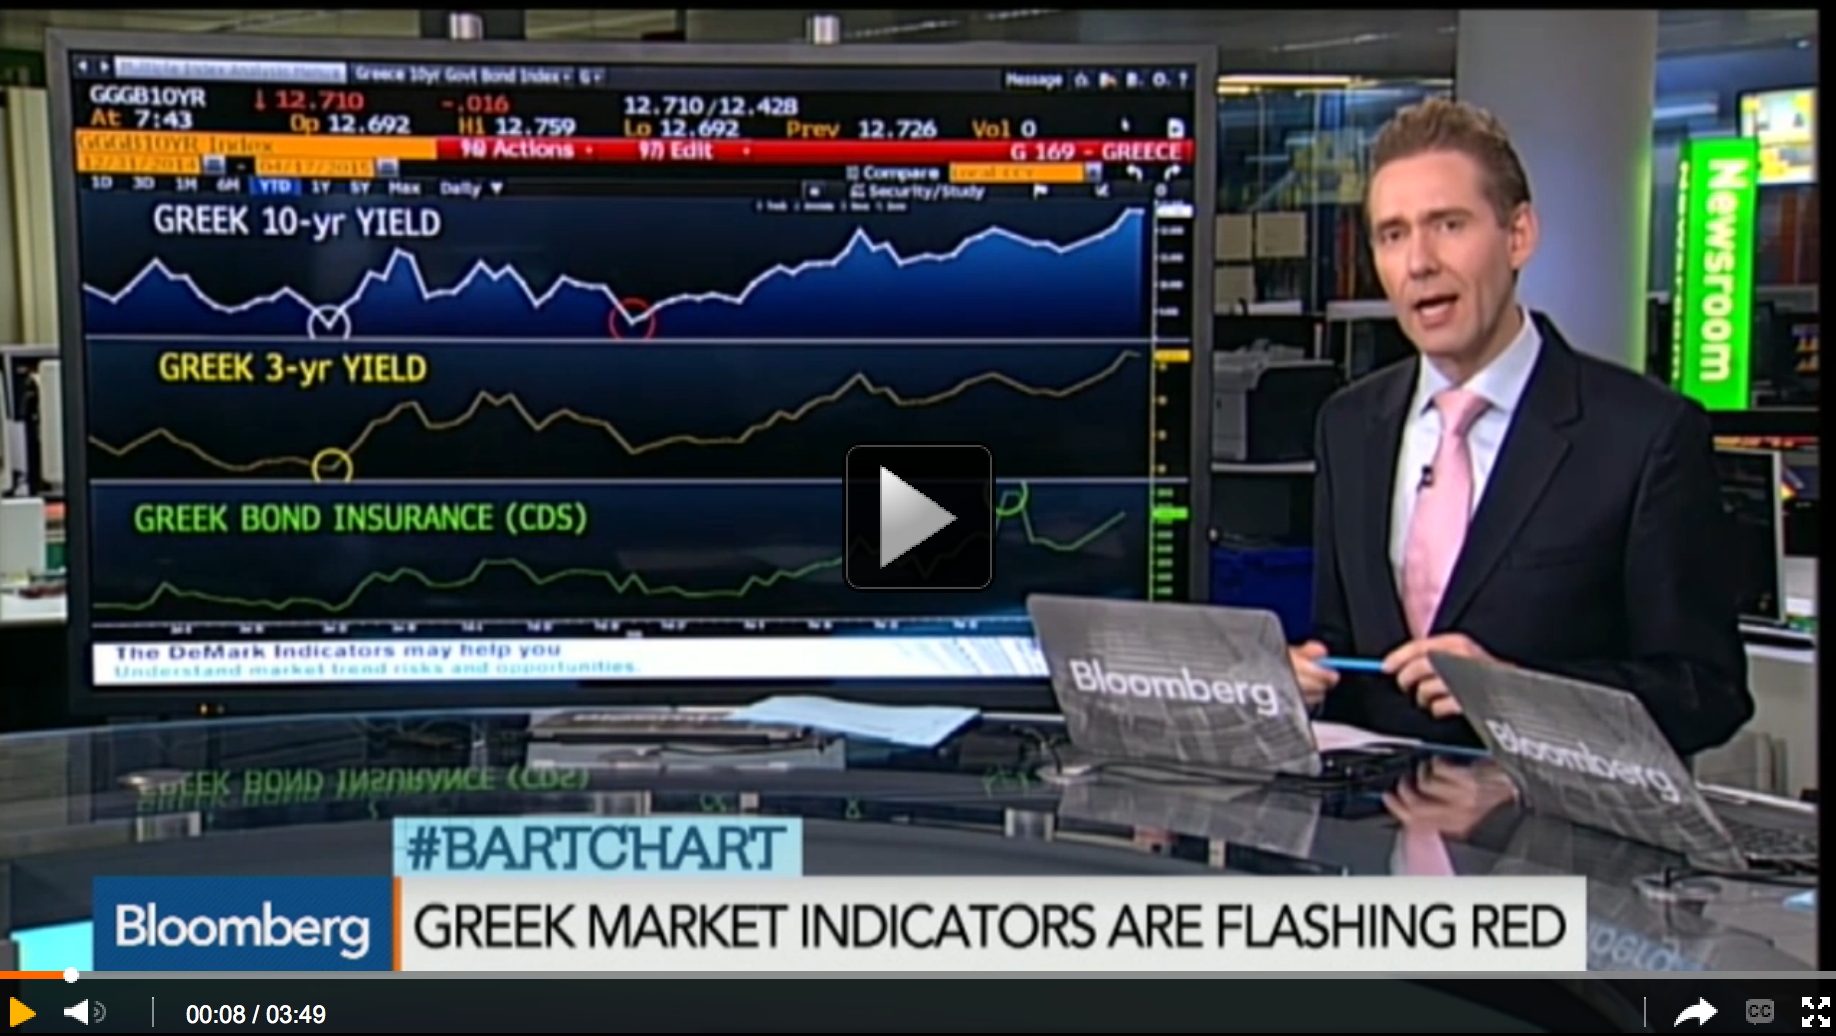 Greek Market Indicators Flashing Red